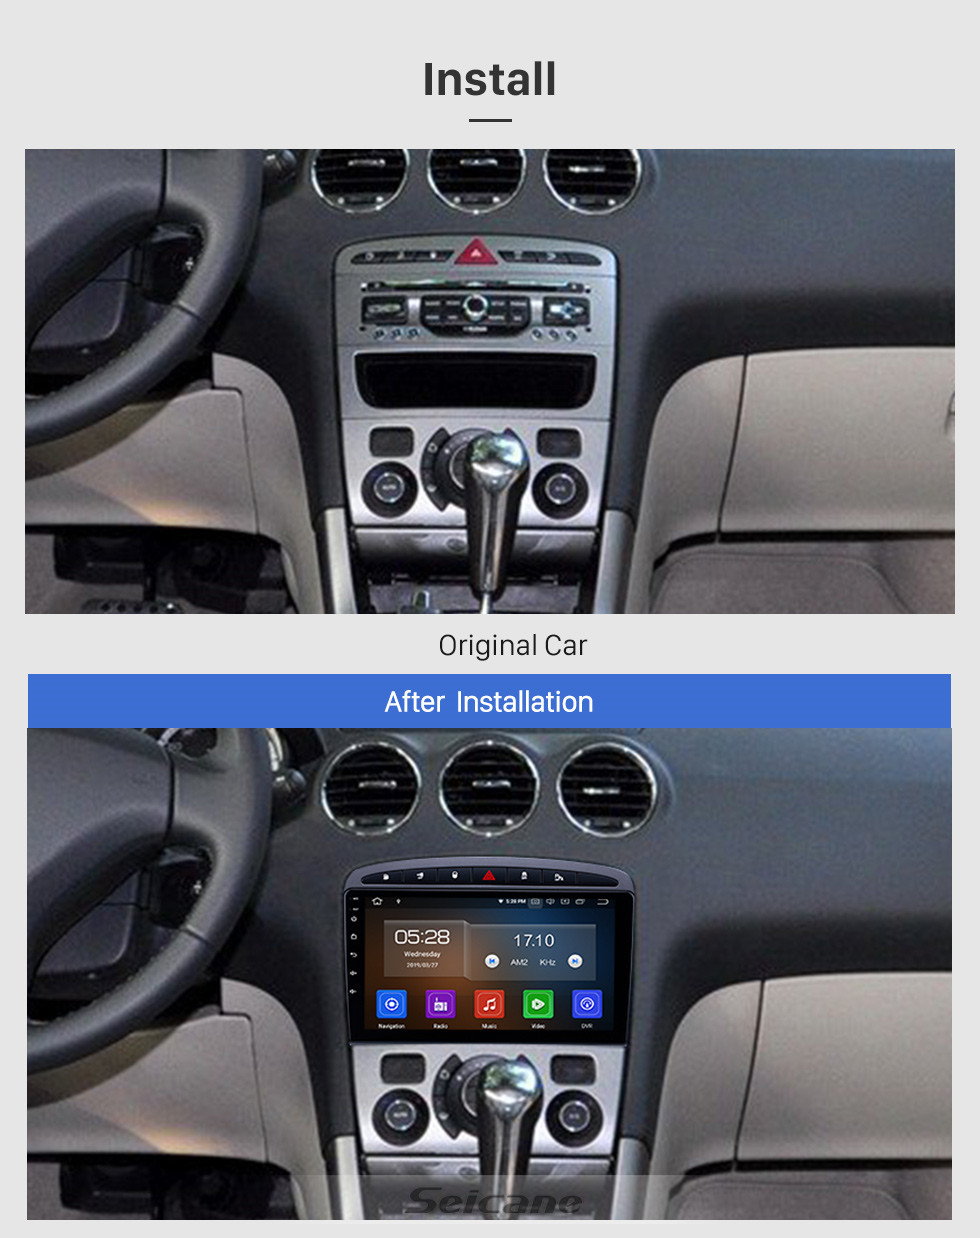 Seicane 2010 2011 Peugeot 308 408 Android 9.0 9 inch Bluetooth Radio GPS Navi HD Touchscreen Stereo USB Mirror Link Aux SWC support DVD 4G WIFI DVR Carplay